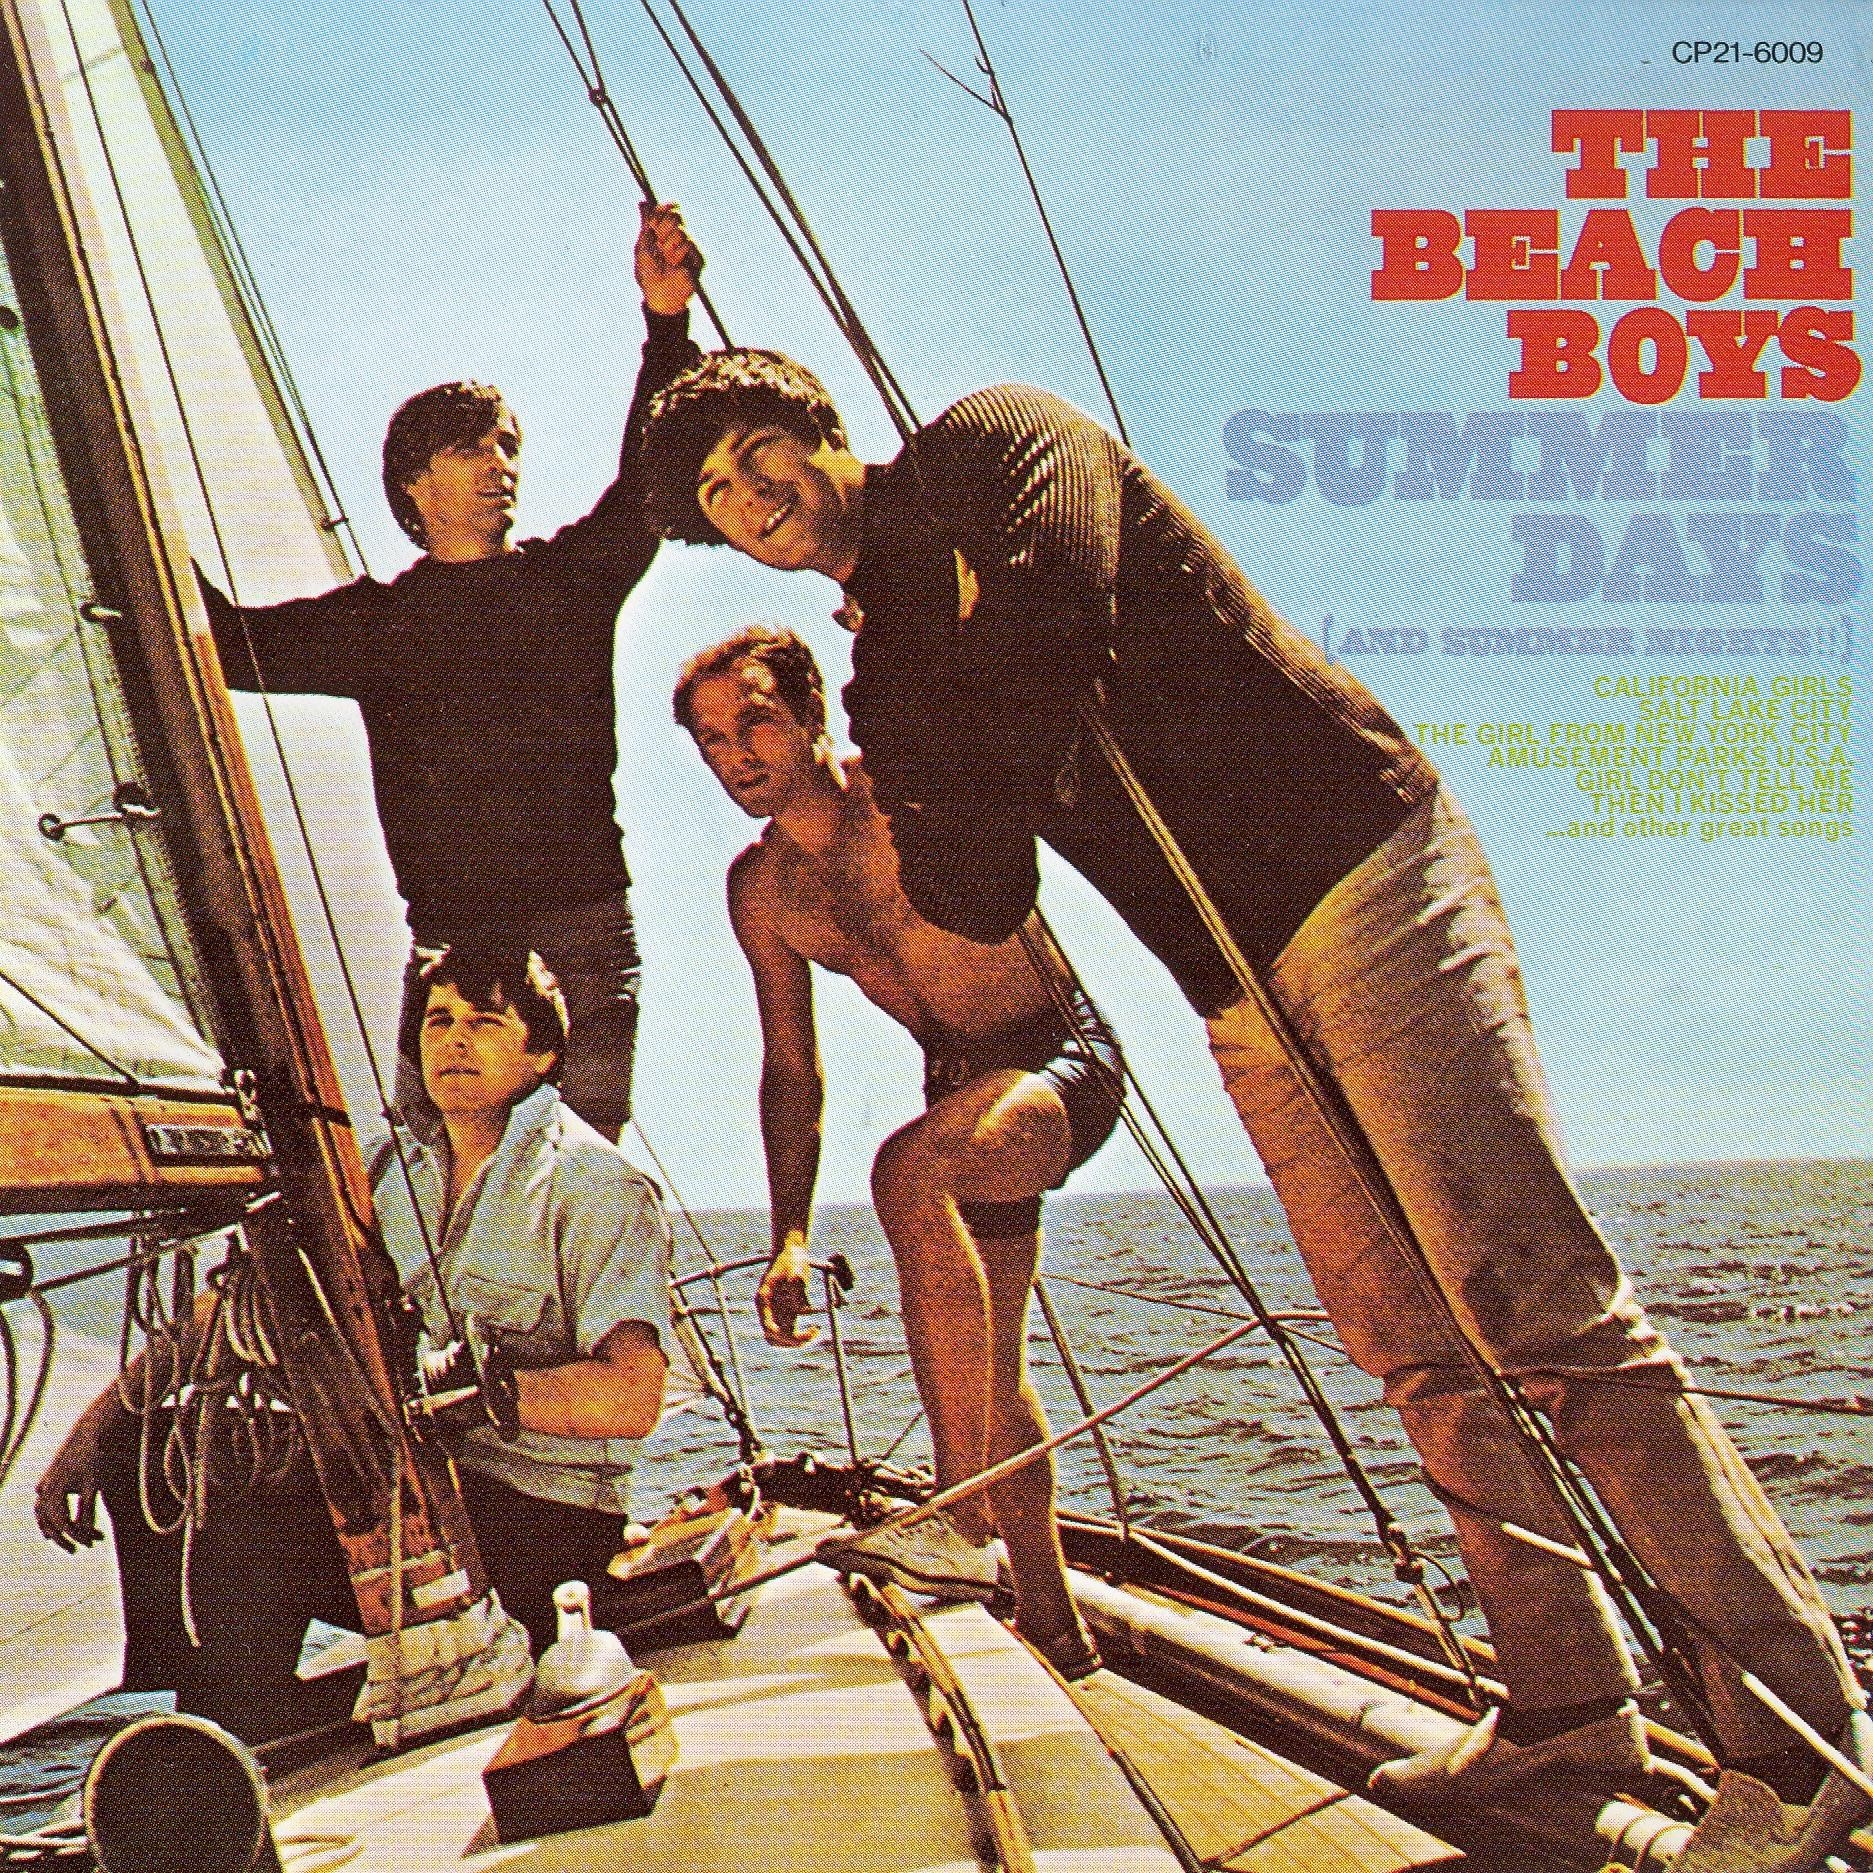 The beach boys Summer days and summer nights